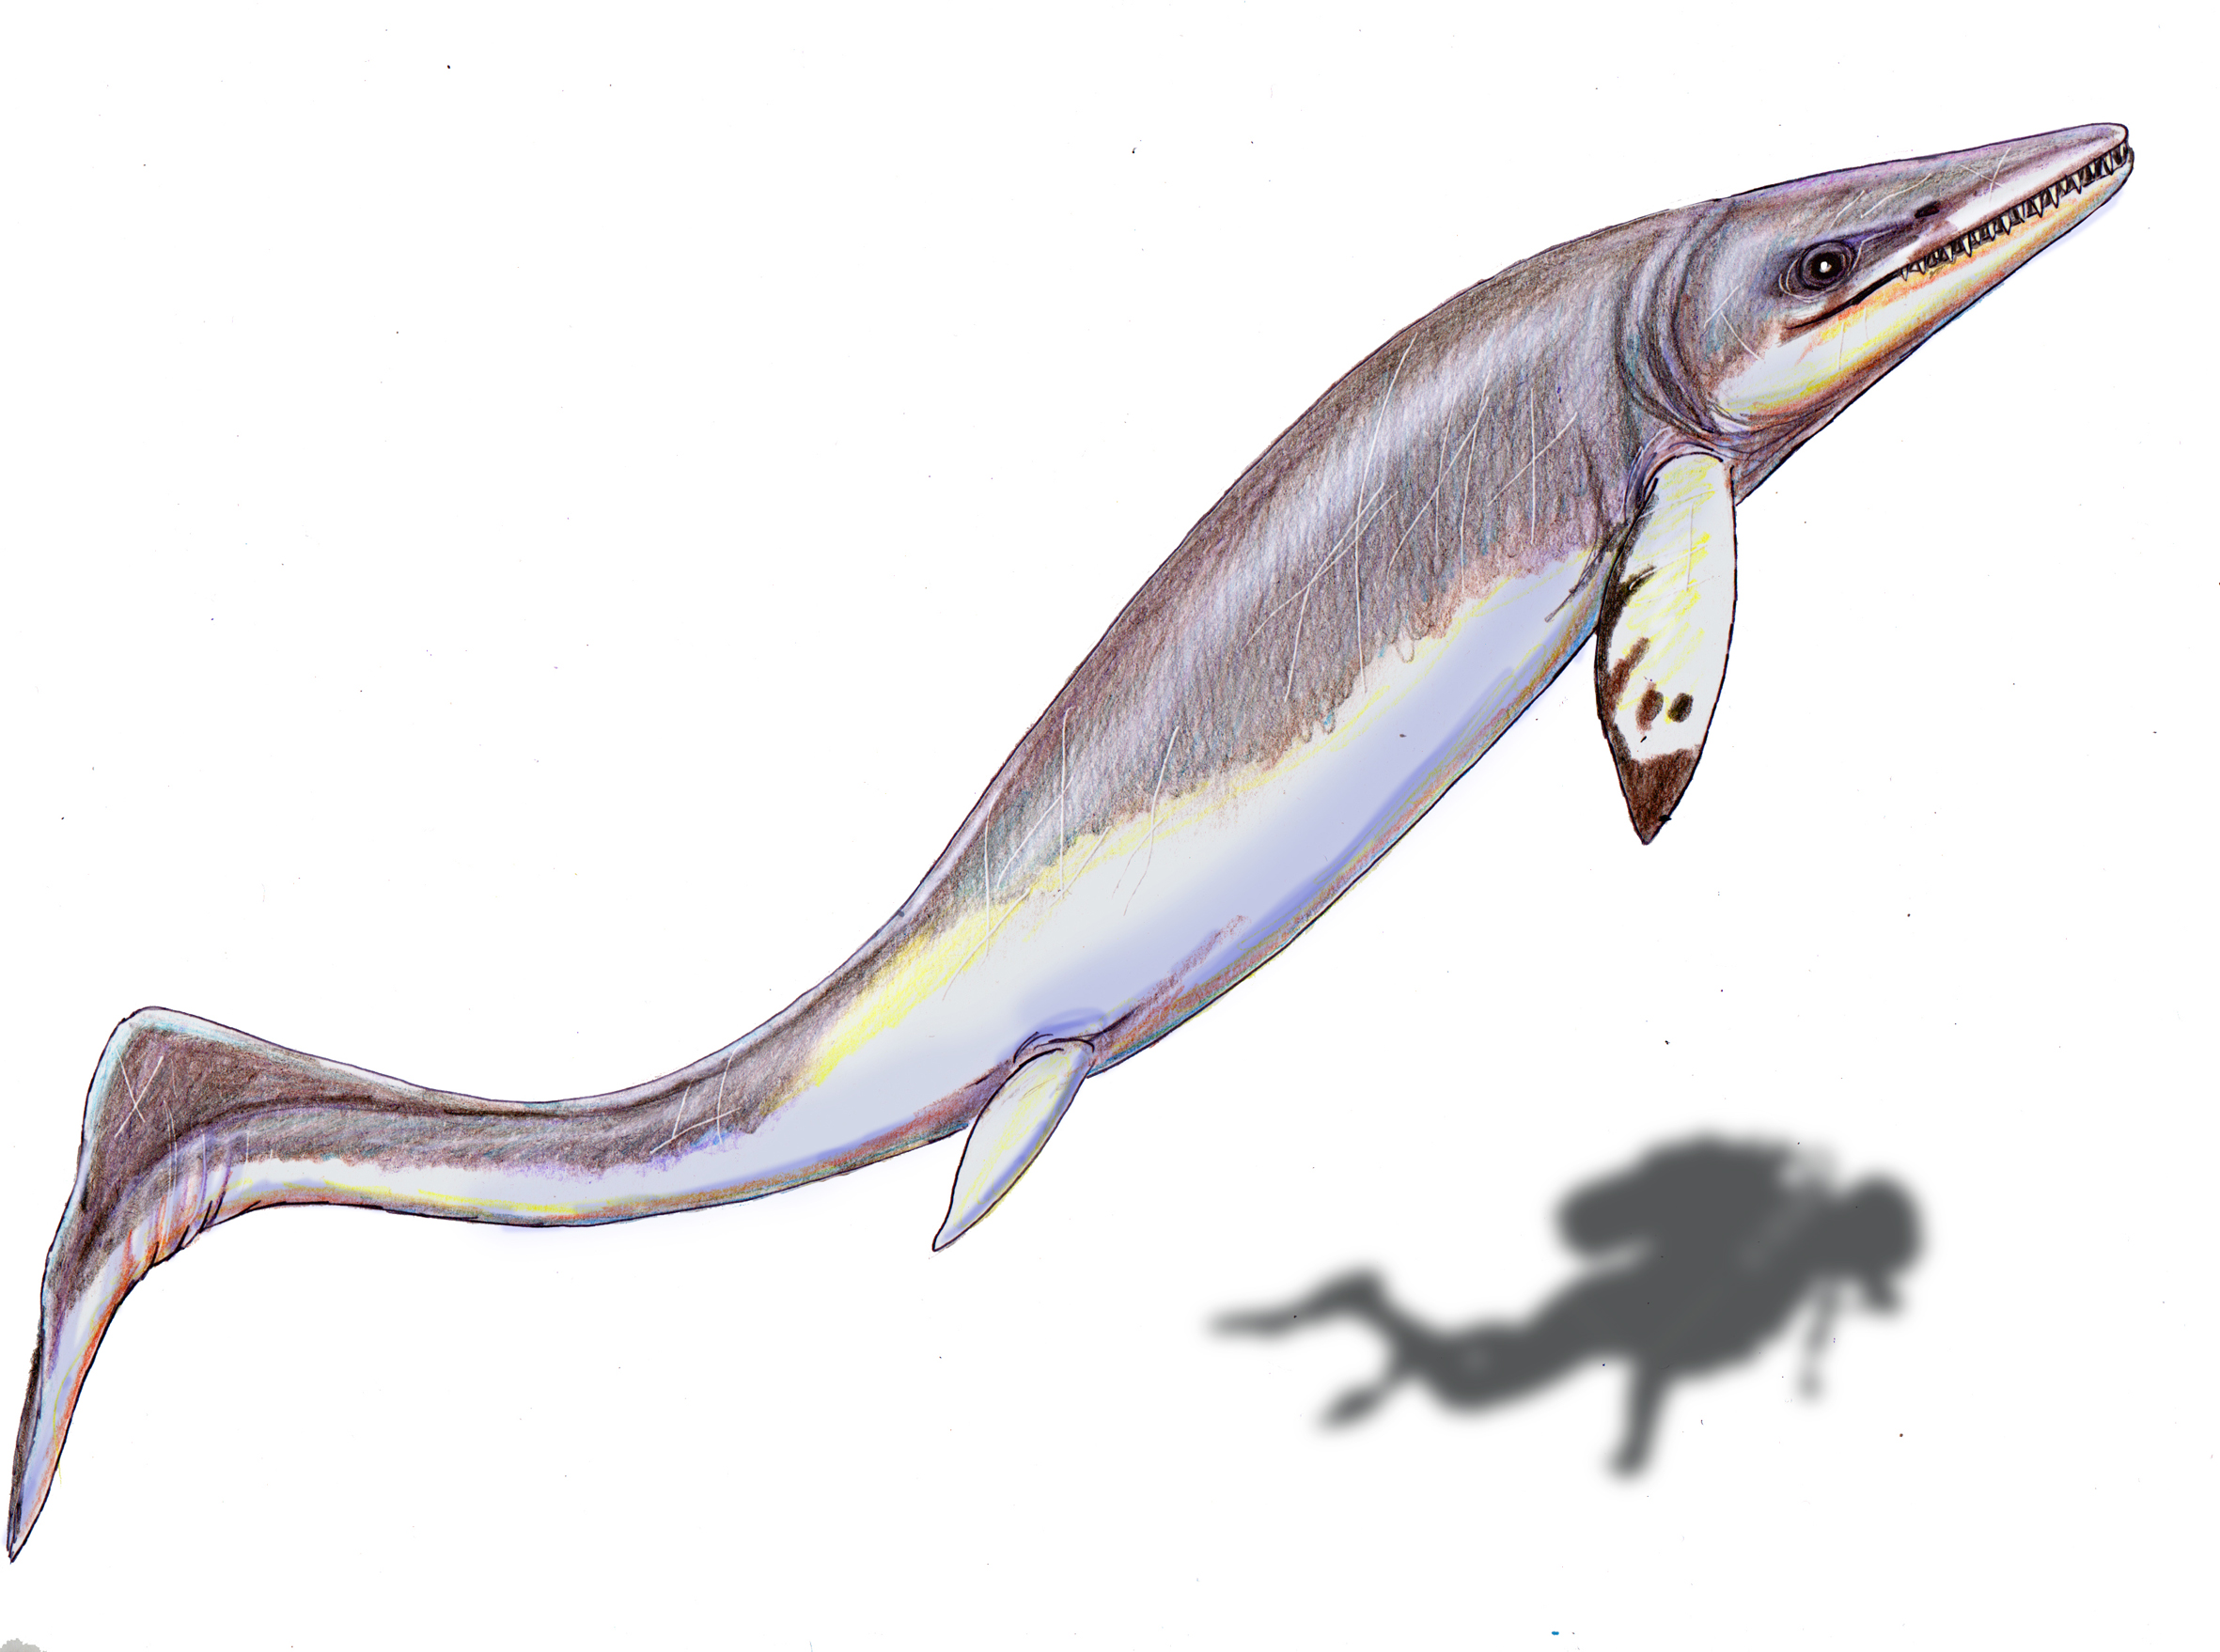 Illustration of a Thalattoarchon compared to a diver © Wikimedia Commons